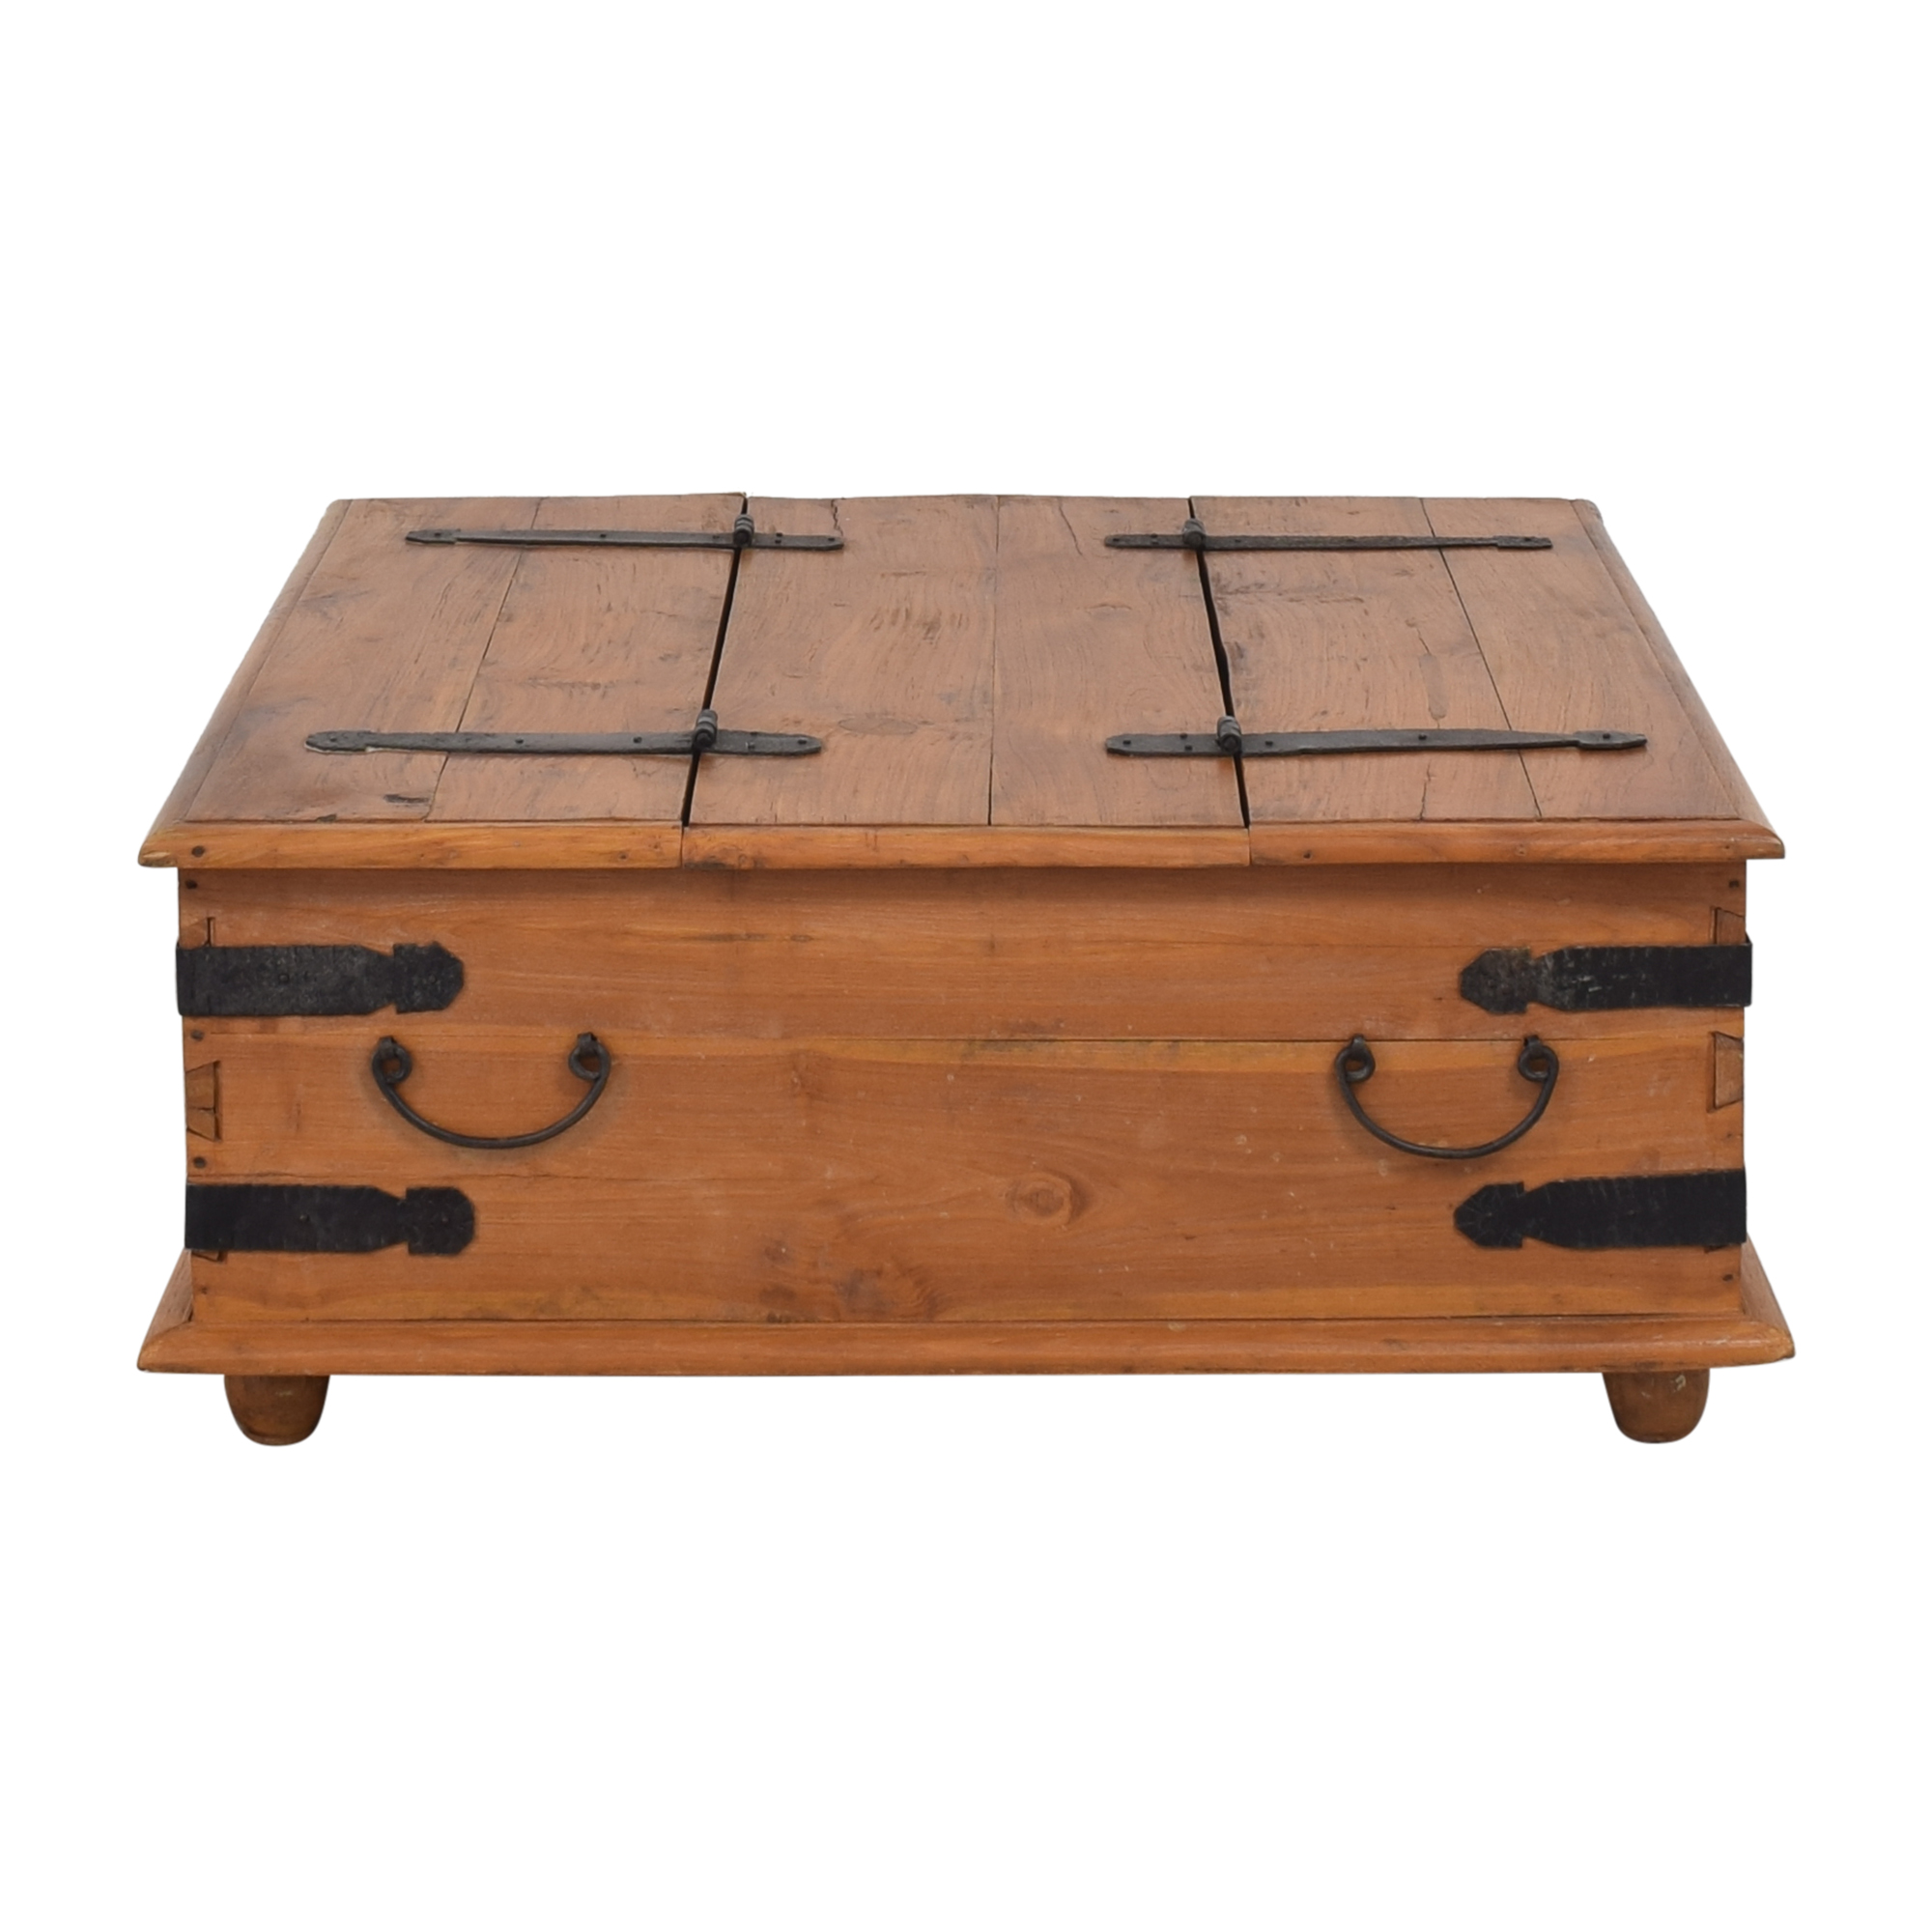 Crate & Barrel Crate & Barrel Storage Coffee Table for sale